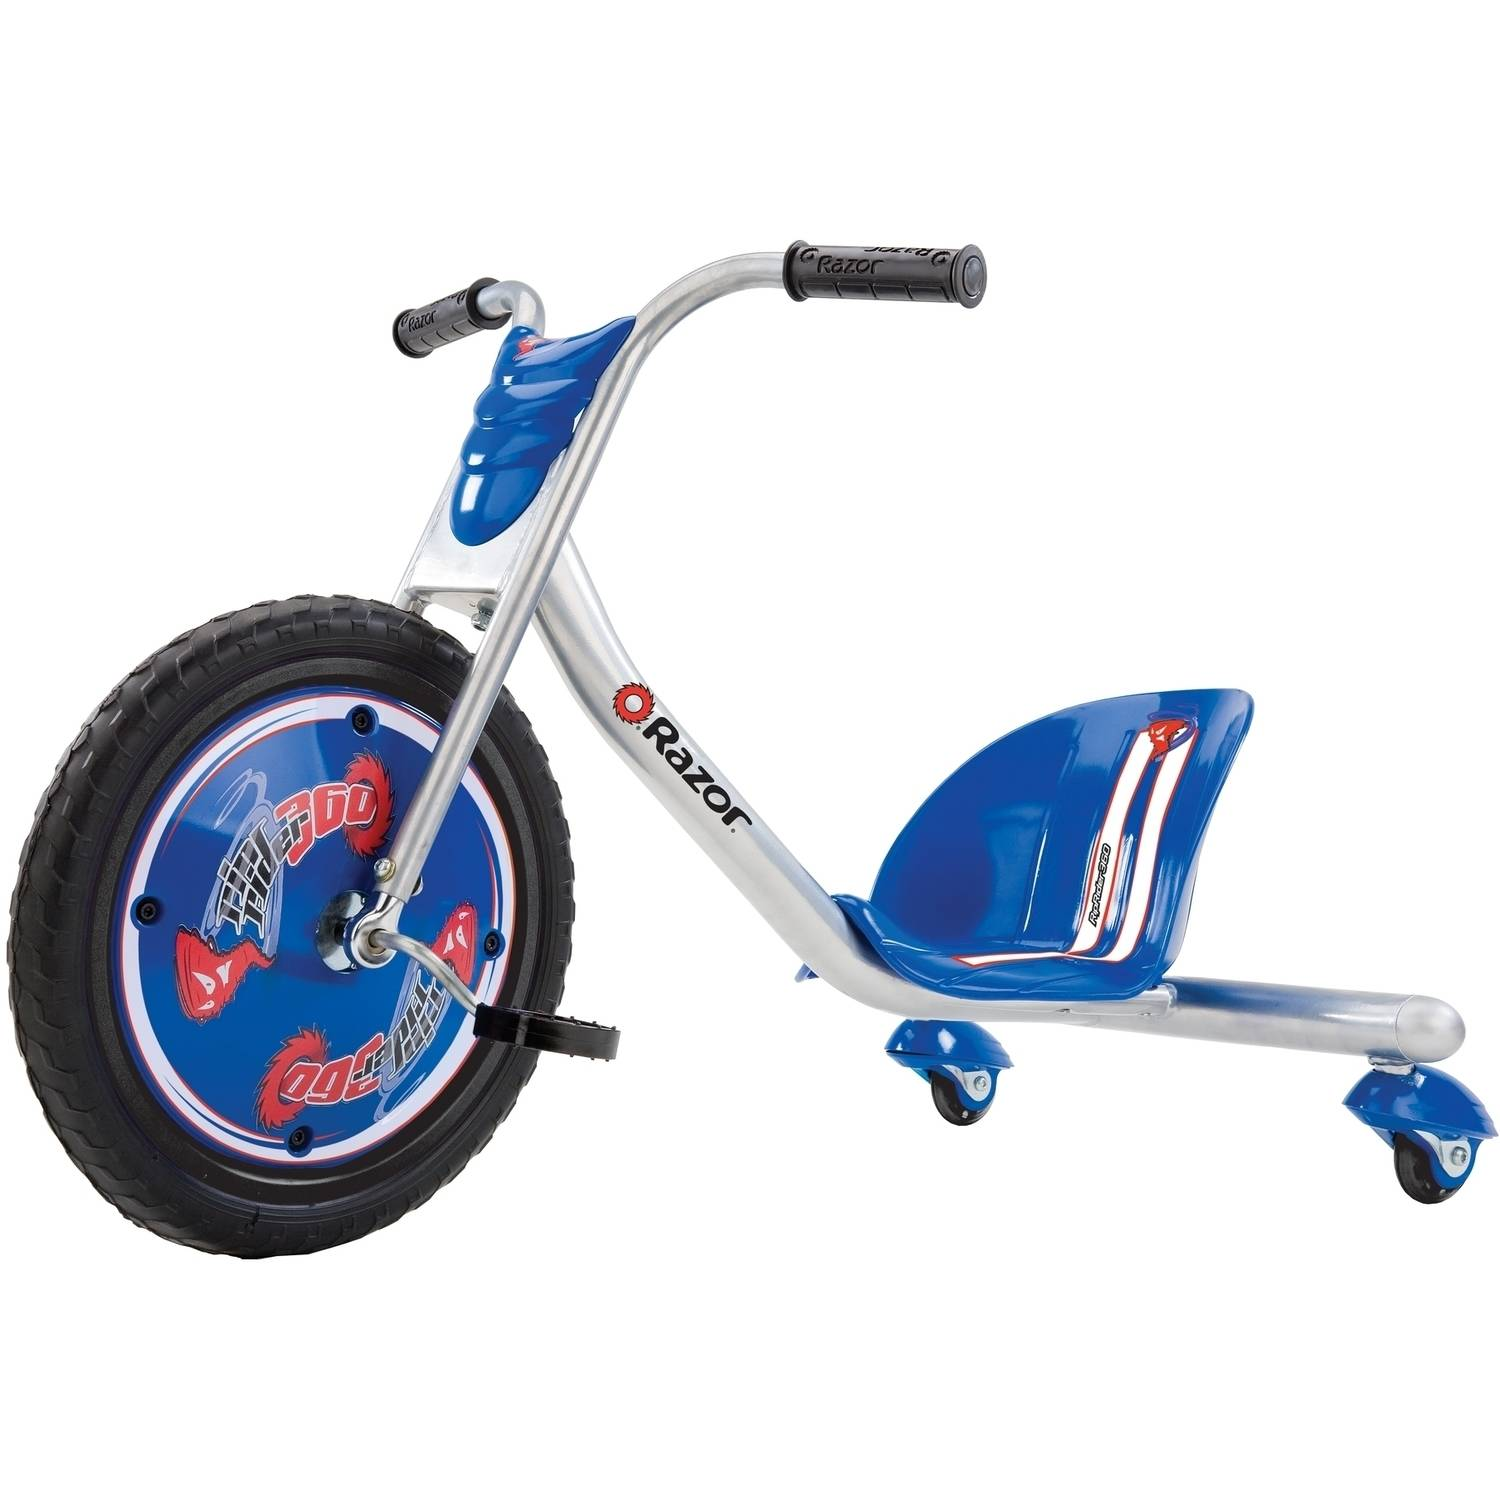 Razor RipRider 360 Ride-On, Blue